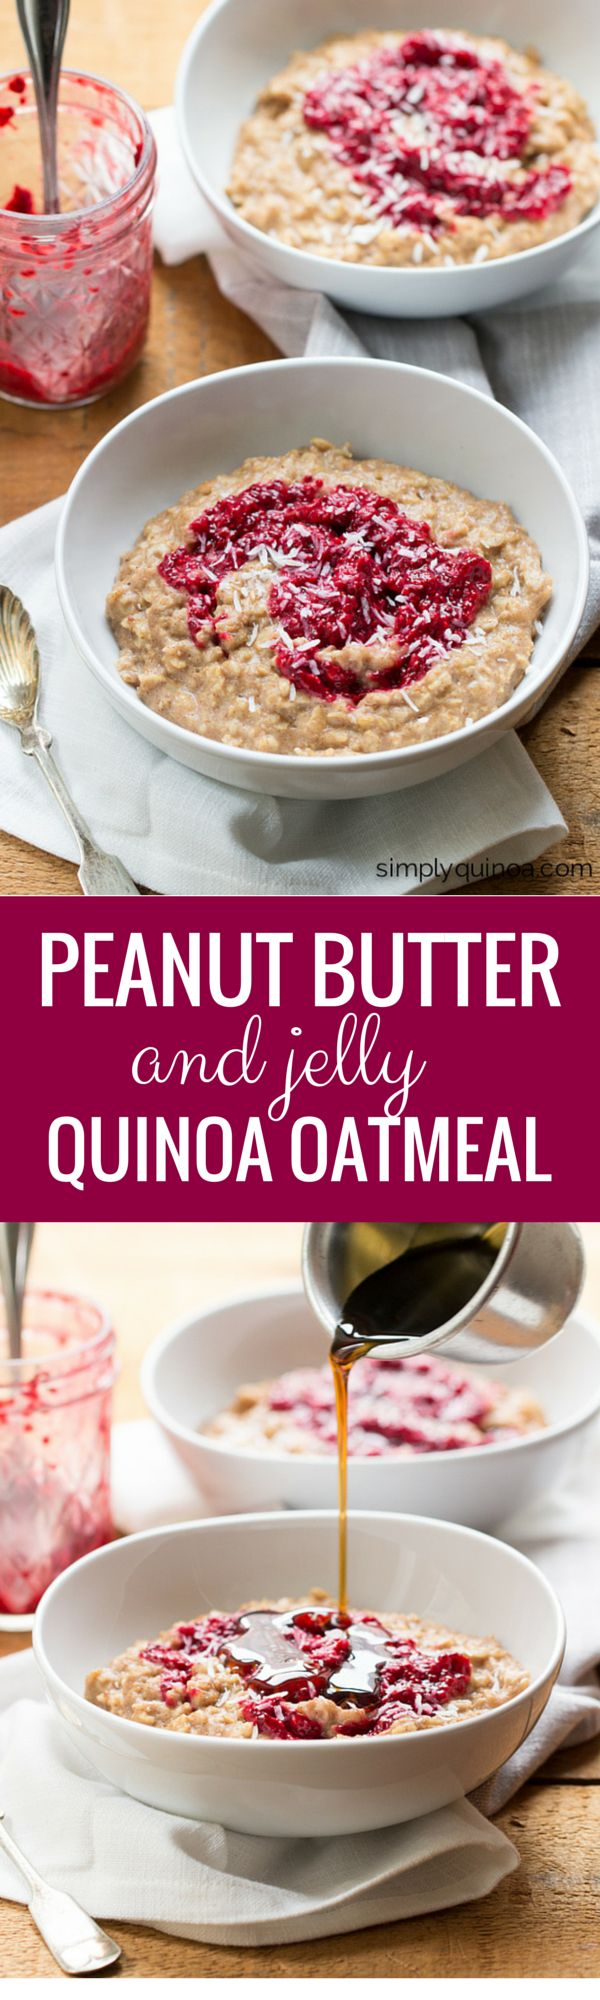 PEANUT BUTTER + JELLY QUINOA OATMEAL -- this is an amazingly easy and delicious breakfast that even the most serious of adults will love (it brings back all those childhood memories of the crustless PB+Js from my lunchbox). And it's also gluten-free + vegan too!